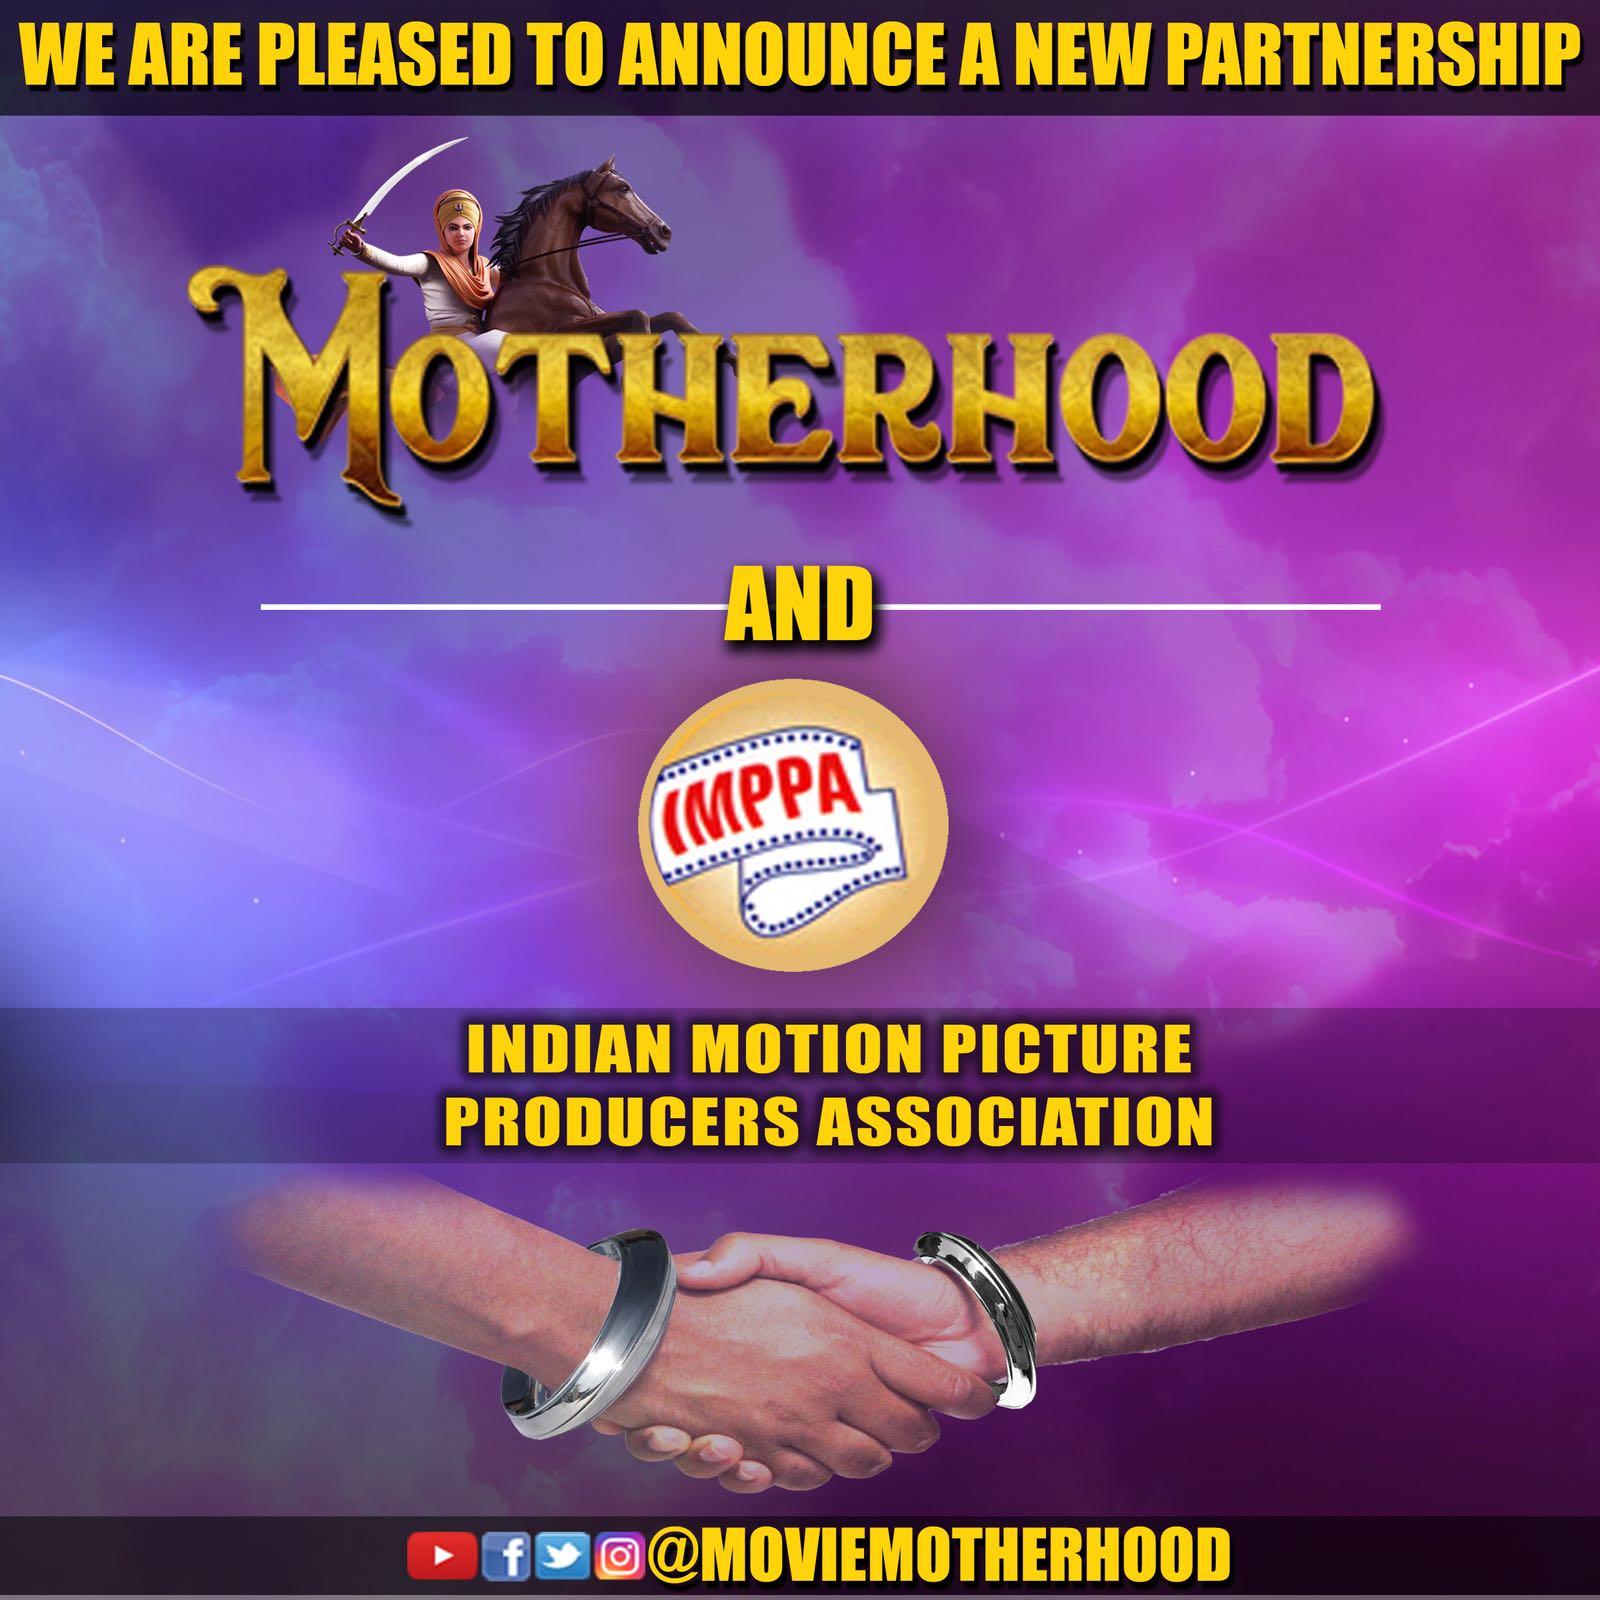 Let's welcome the IMPPA to the family!